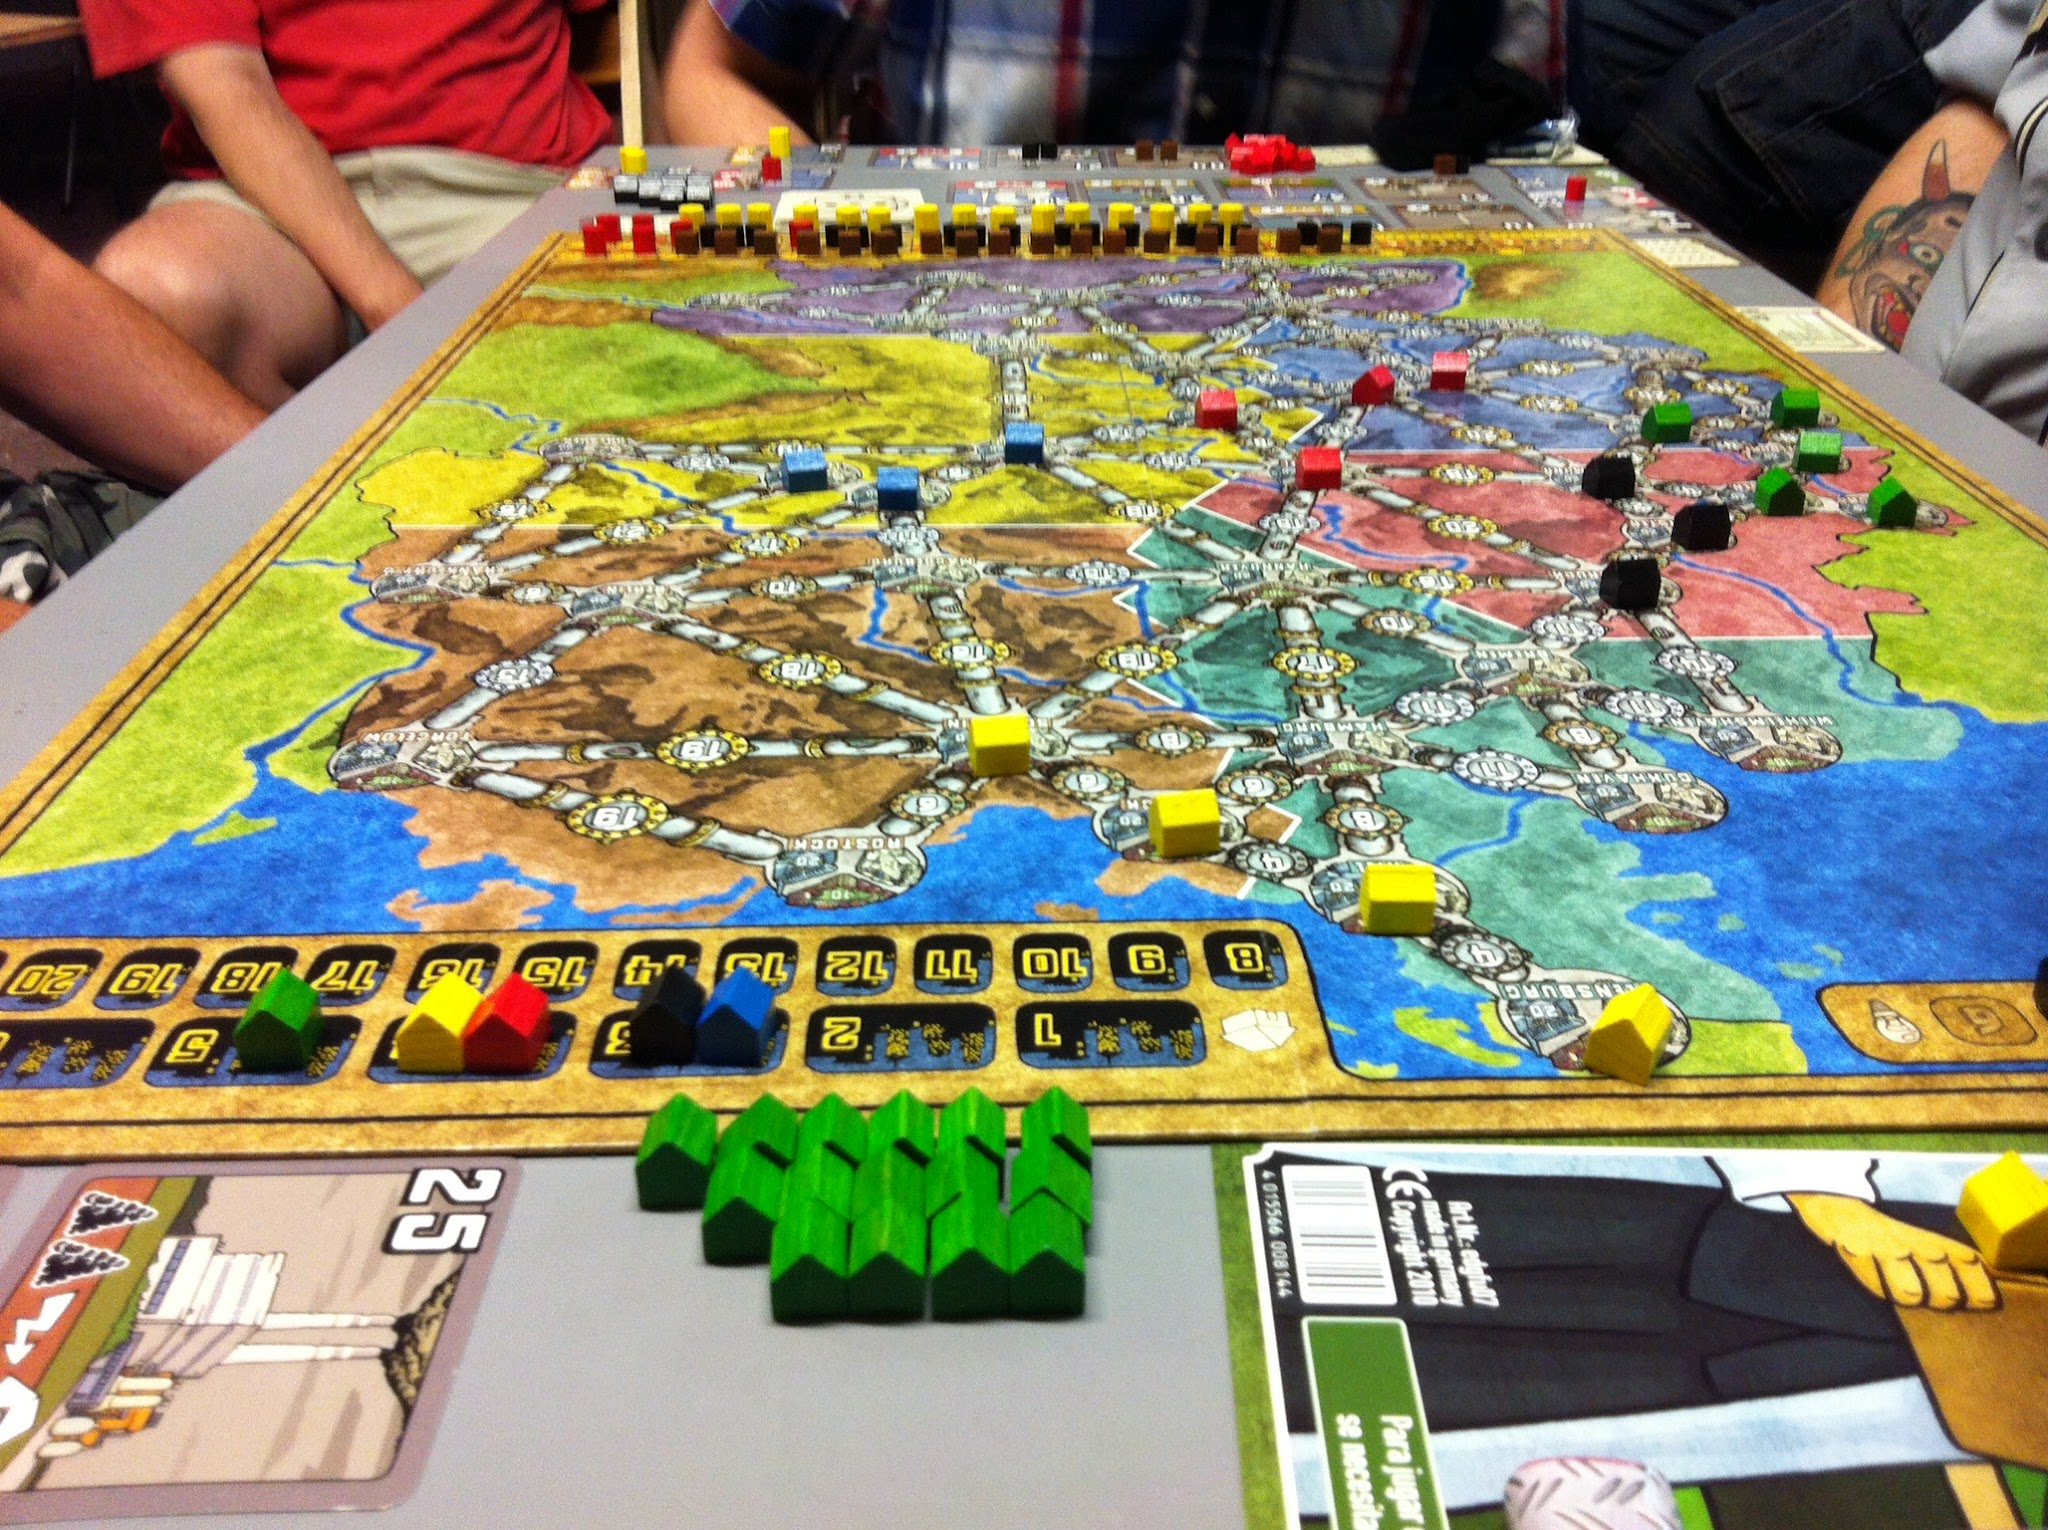 Alta Tensión, Power Grid, Crying Grumpies